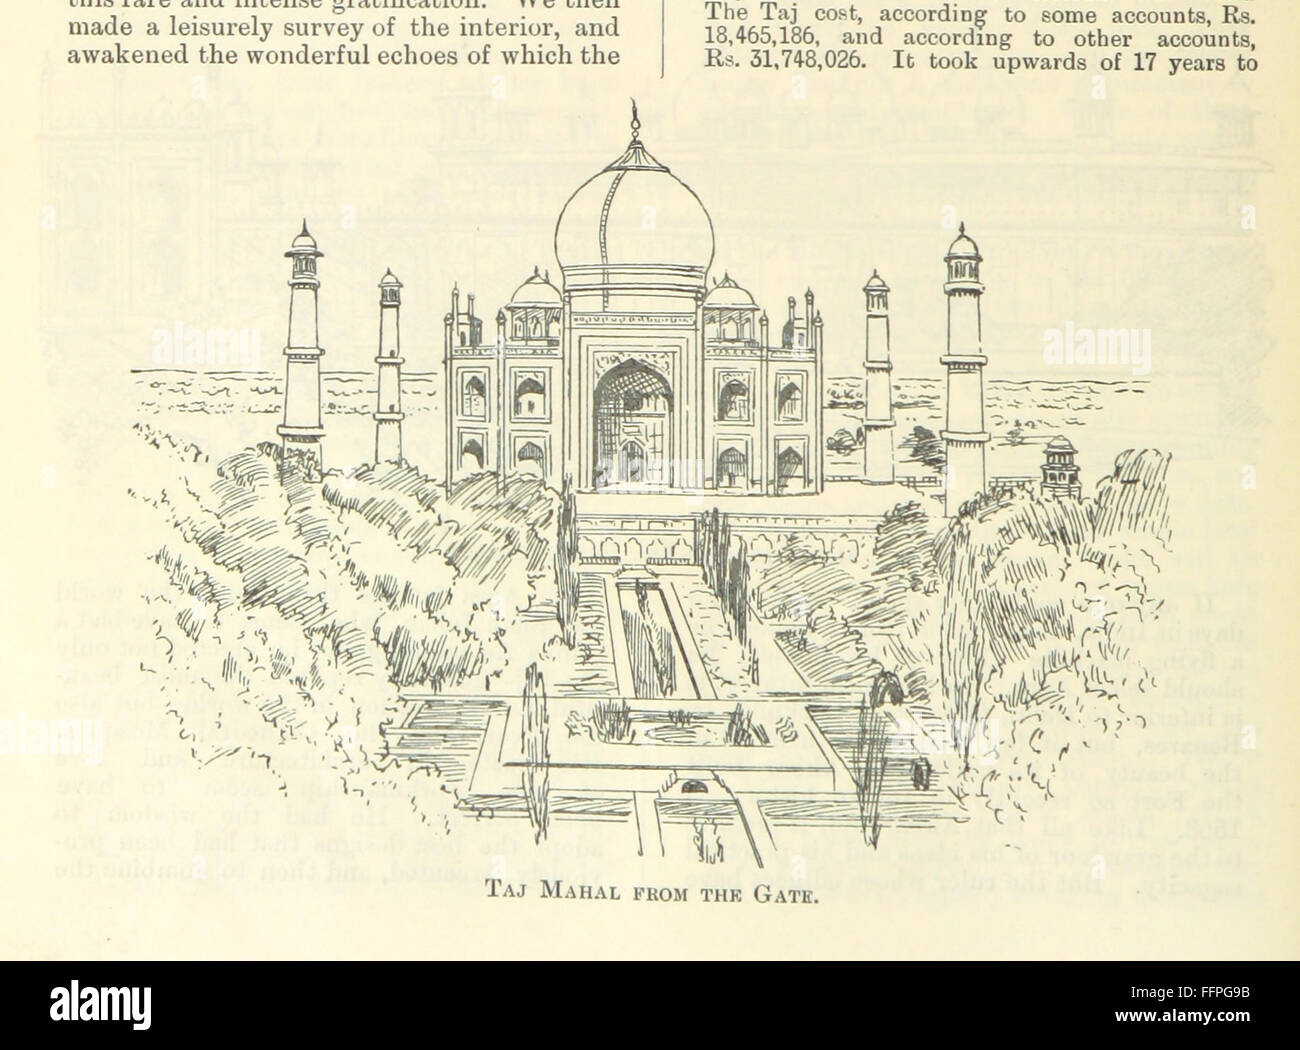 8 of 'Letters from India and Ceylon, including the Manchester of India, the Indian Dundee, and Calcutta jute - Stock Image